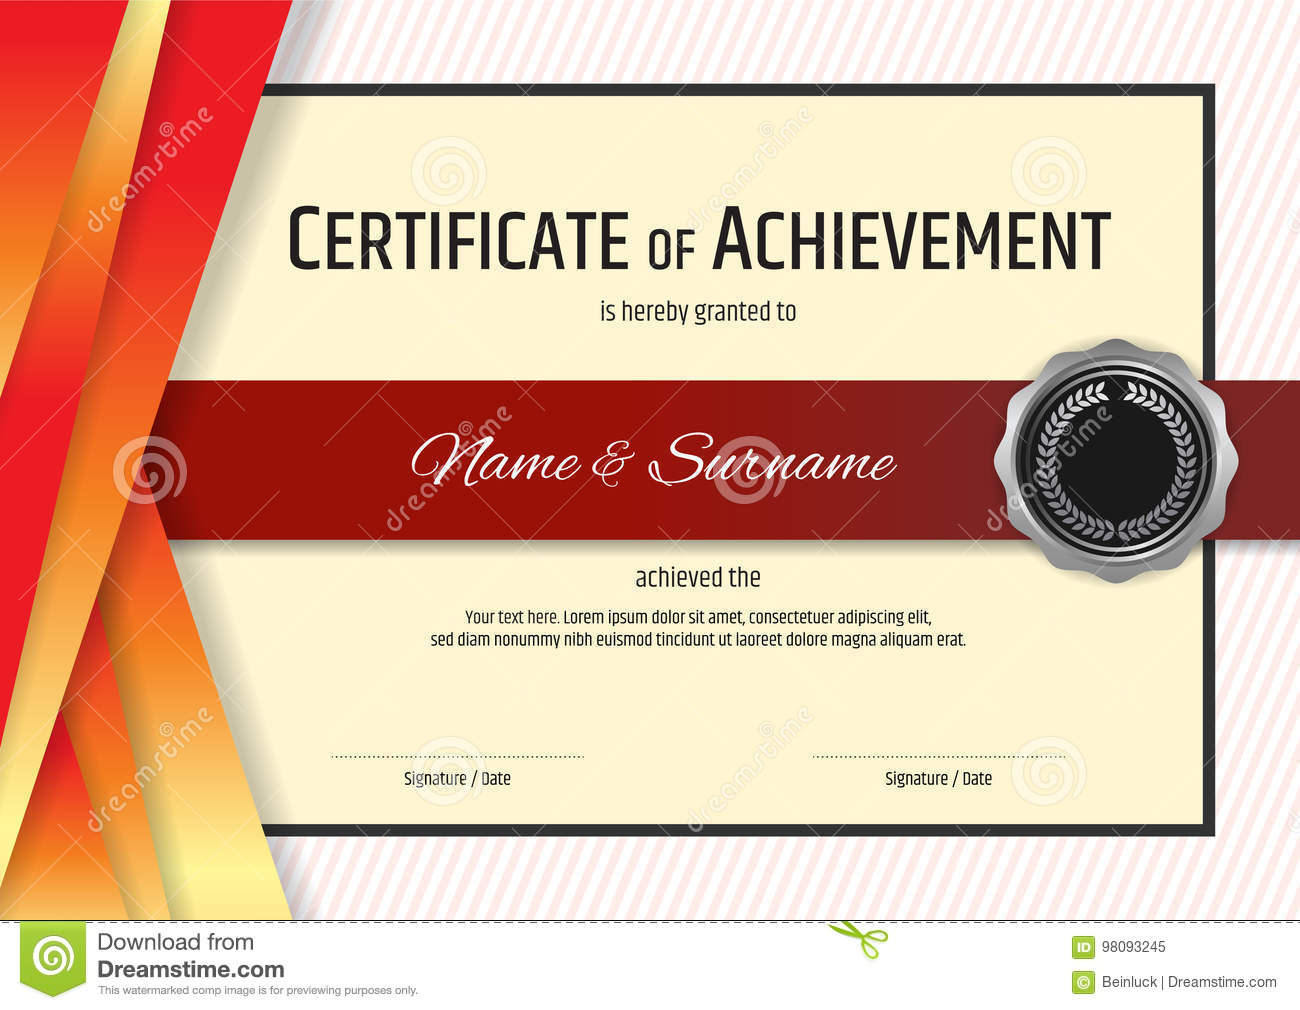 Luxury certificate template with elegant border frame diploma d luxury certificate template with elegant border frame diploma d elements blank yelopaper Image collections